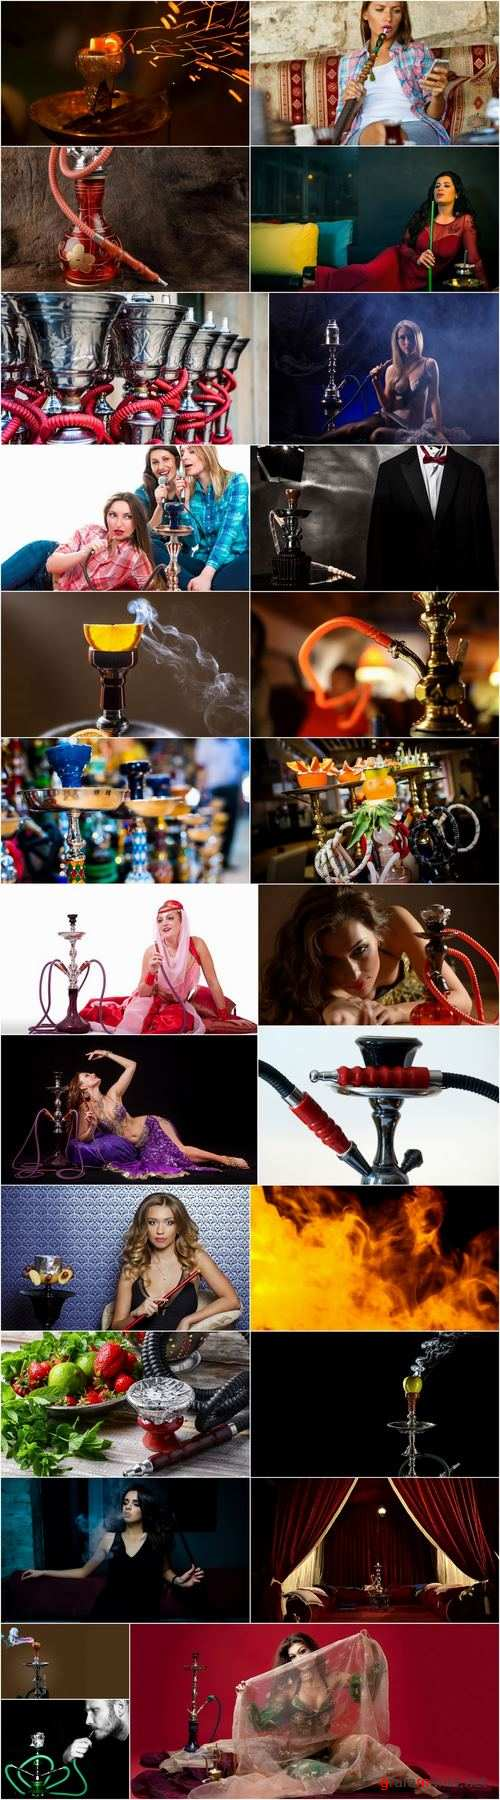 Hookah girl woman smokes a pipe fruity smoke 25 HQ Jpeg